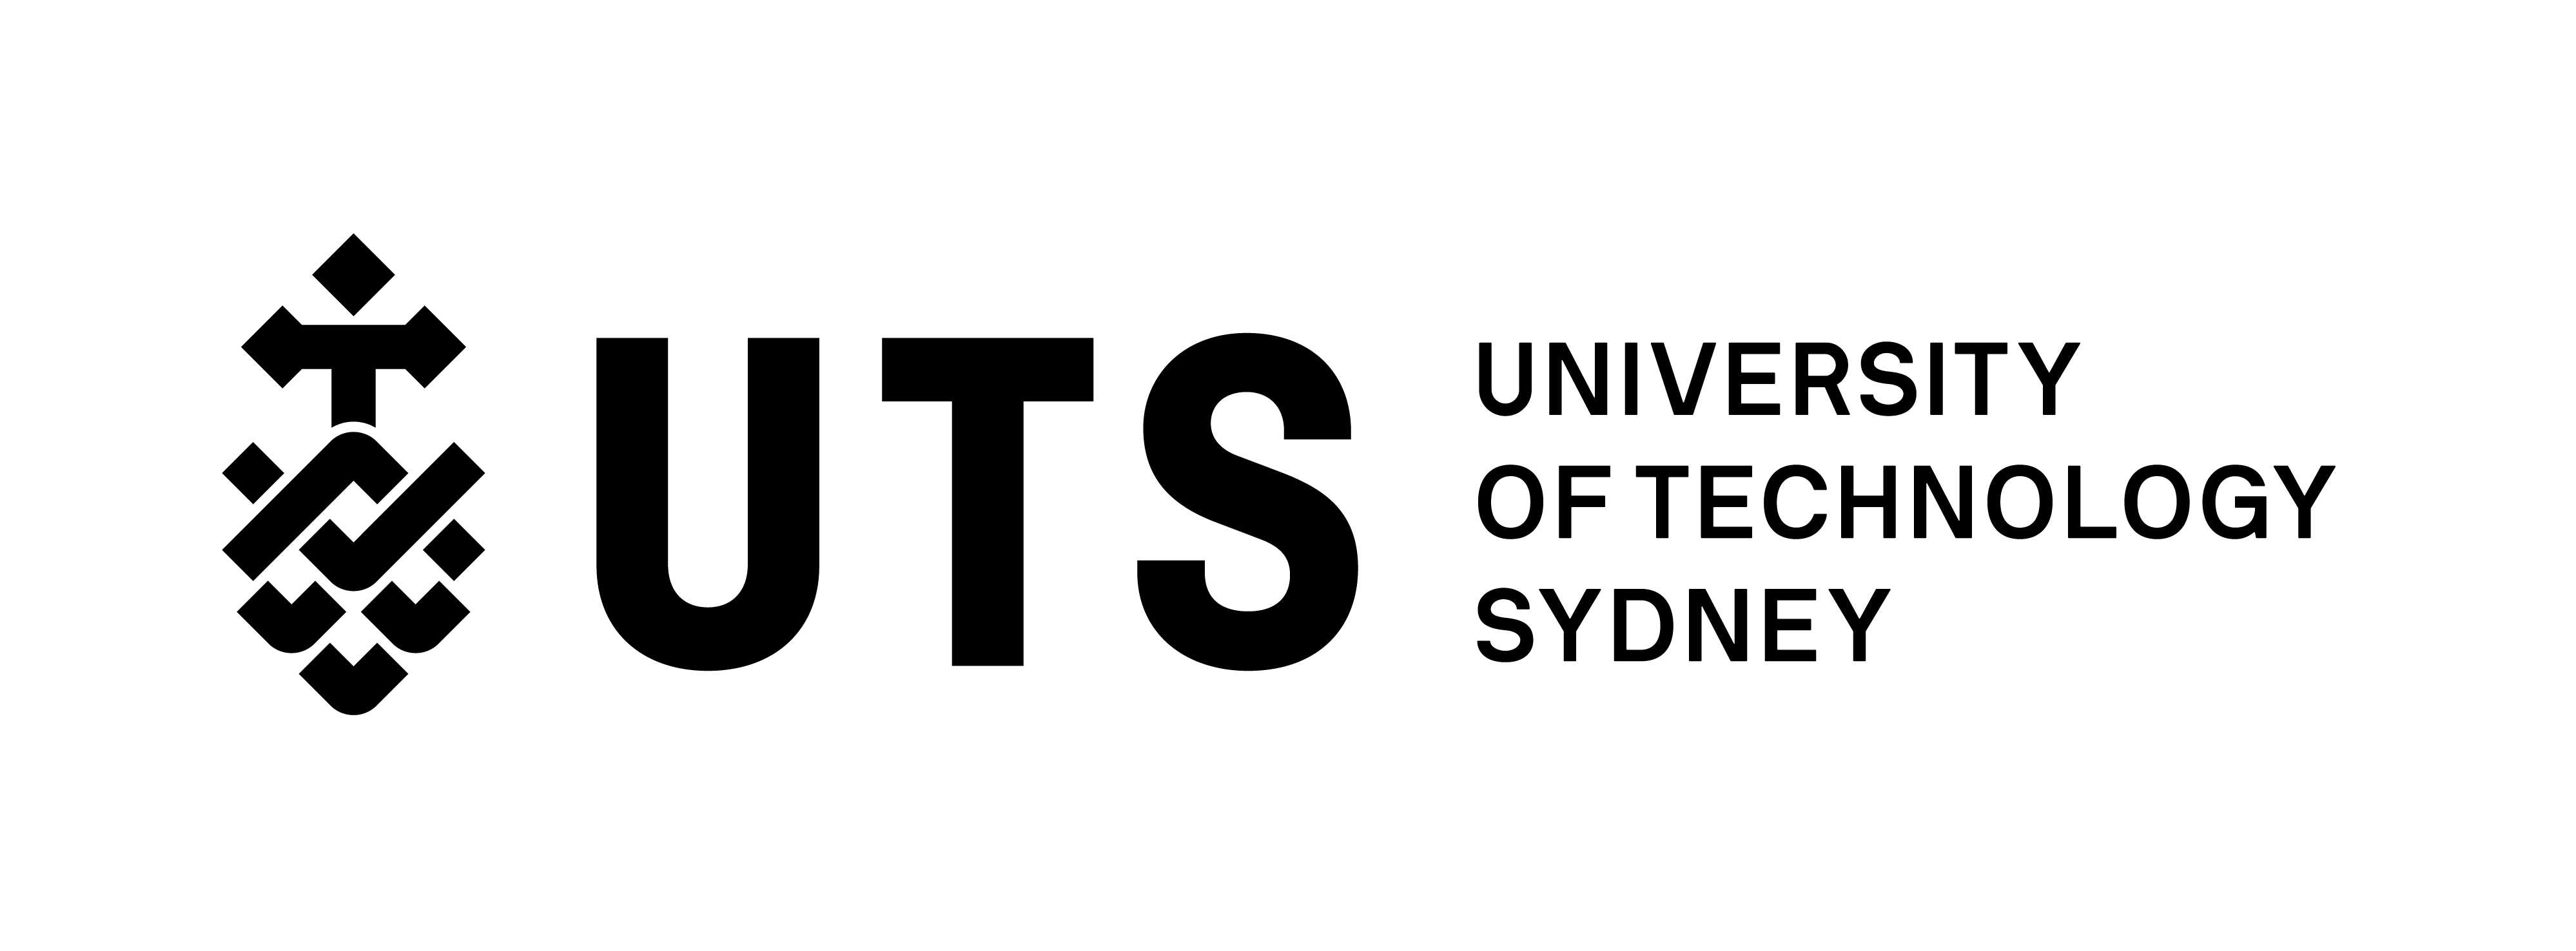 University of Technology Sydney (UTS)